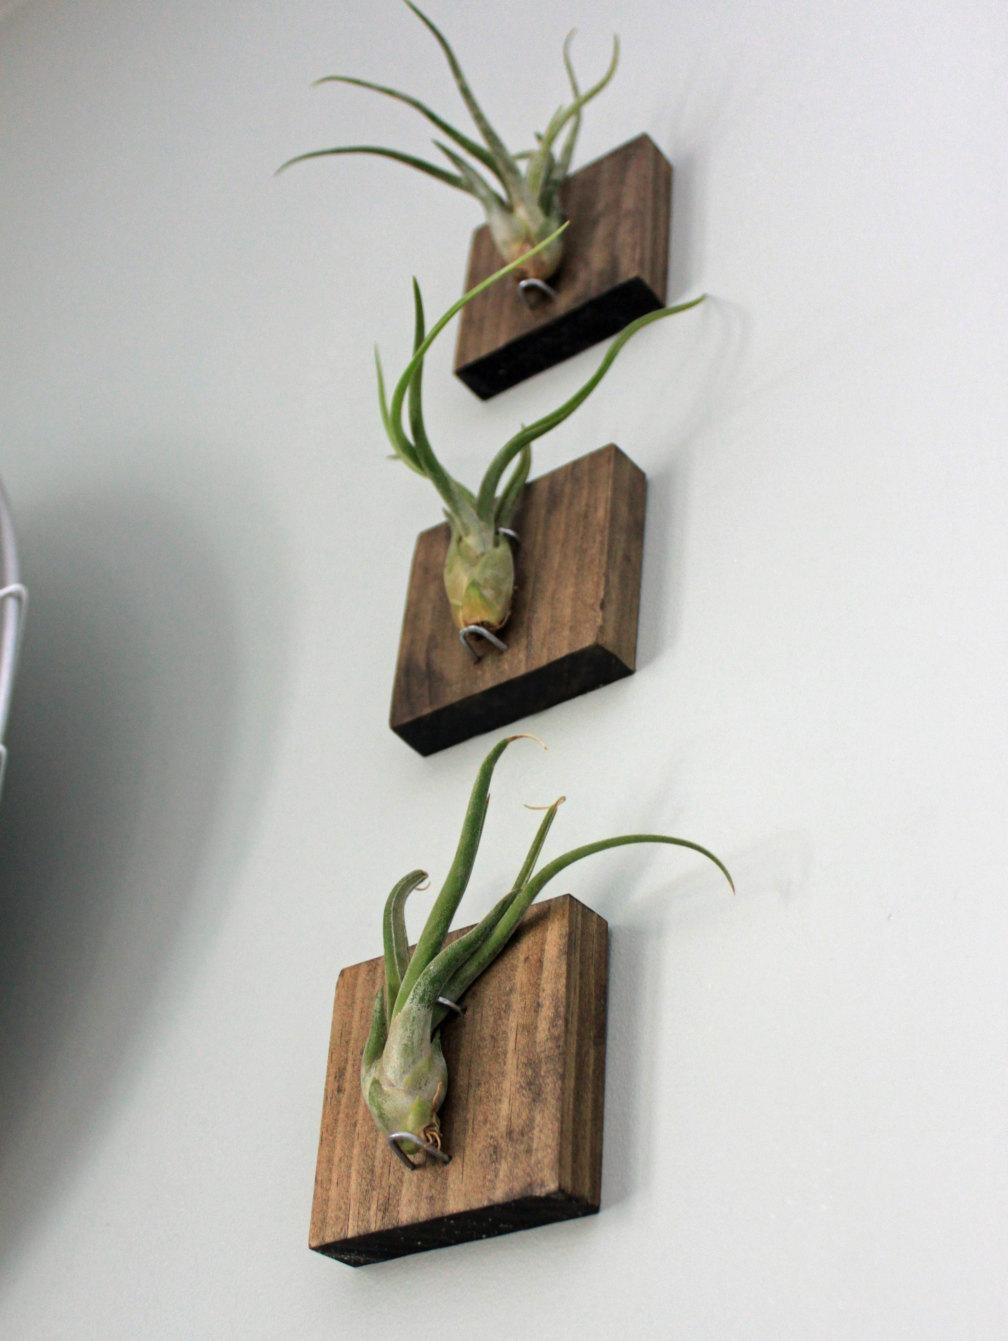 Mounted Air Plants // Medusa's Head // Living Art // Uniqe Pertaining To Air Plant Wall Art (View 5 of 20)